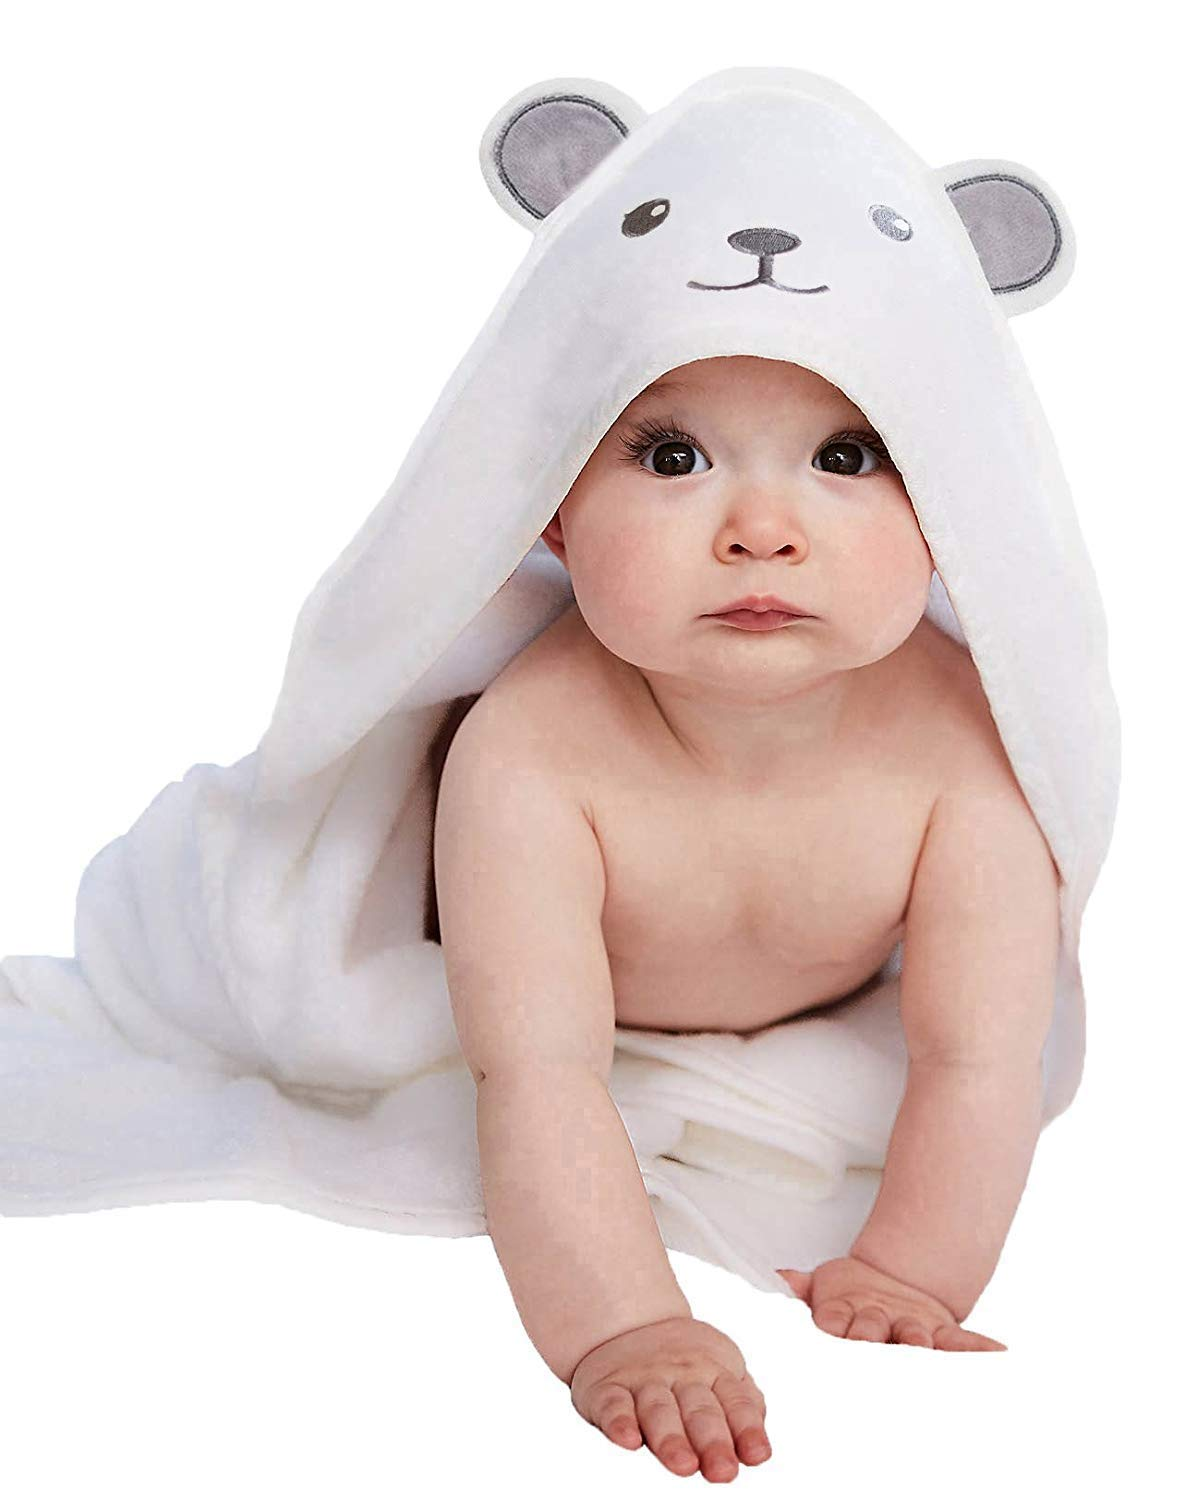 Bamboo Hooded Baby Towel - Ultra Absorbent and Hypoallergenic